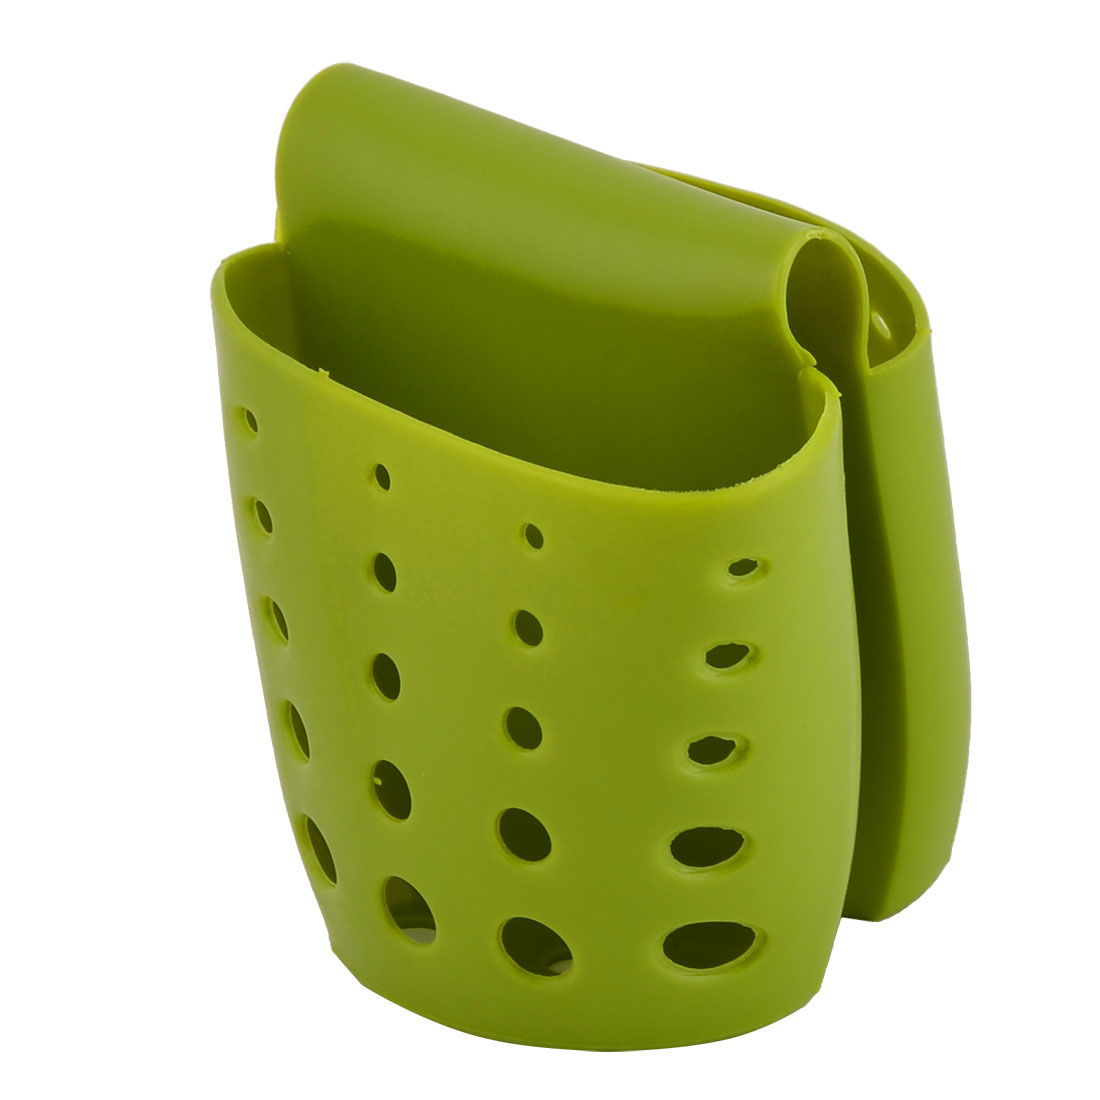 Household Saddle Design Sink Faucet Sponge Drainer Holder Basket Green